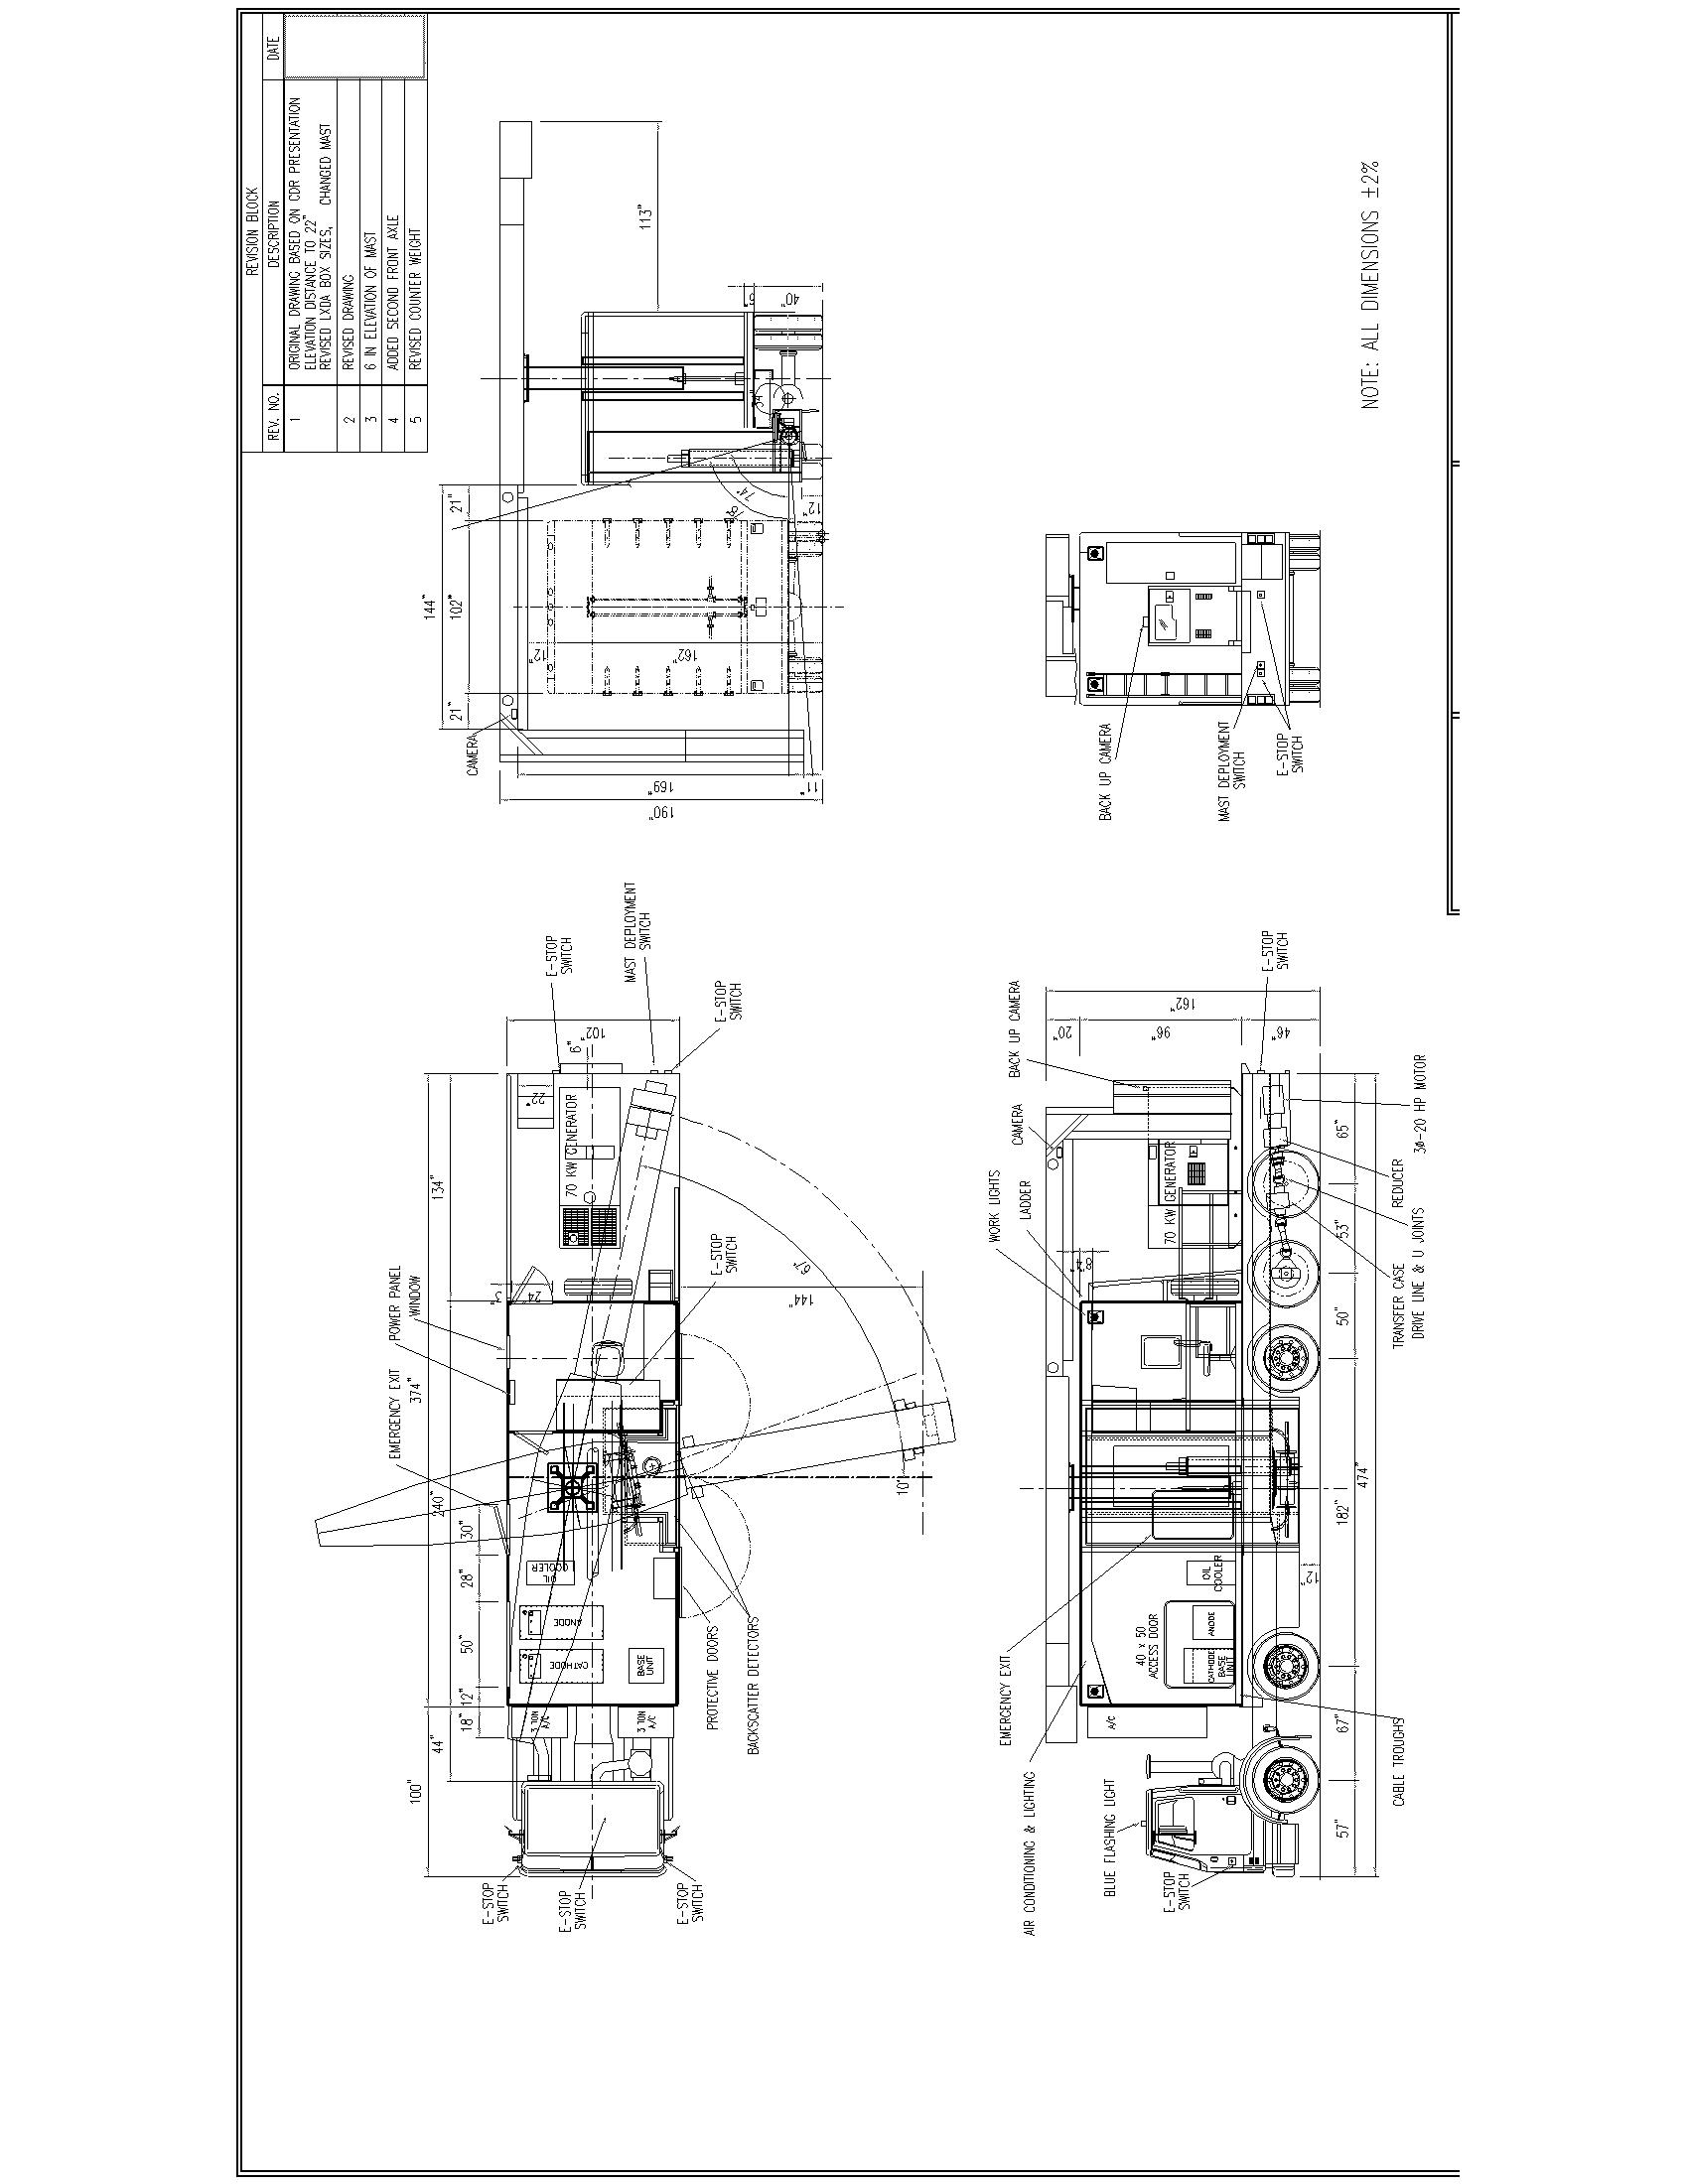 Mobile X Ray Cx2500 Vehicle Specifications Camera Flash Circuit Diagram